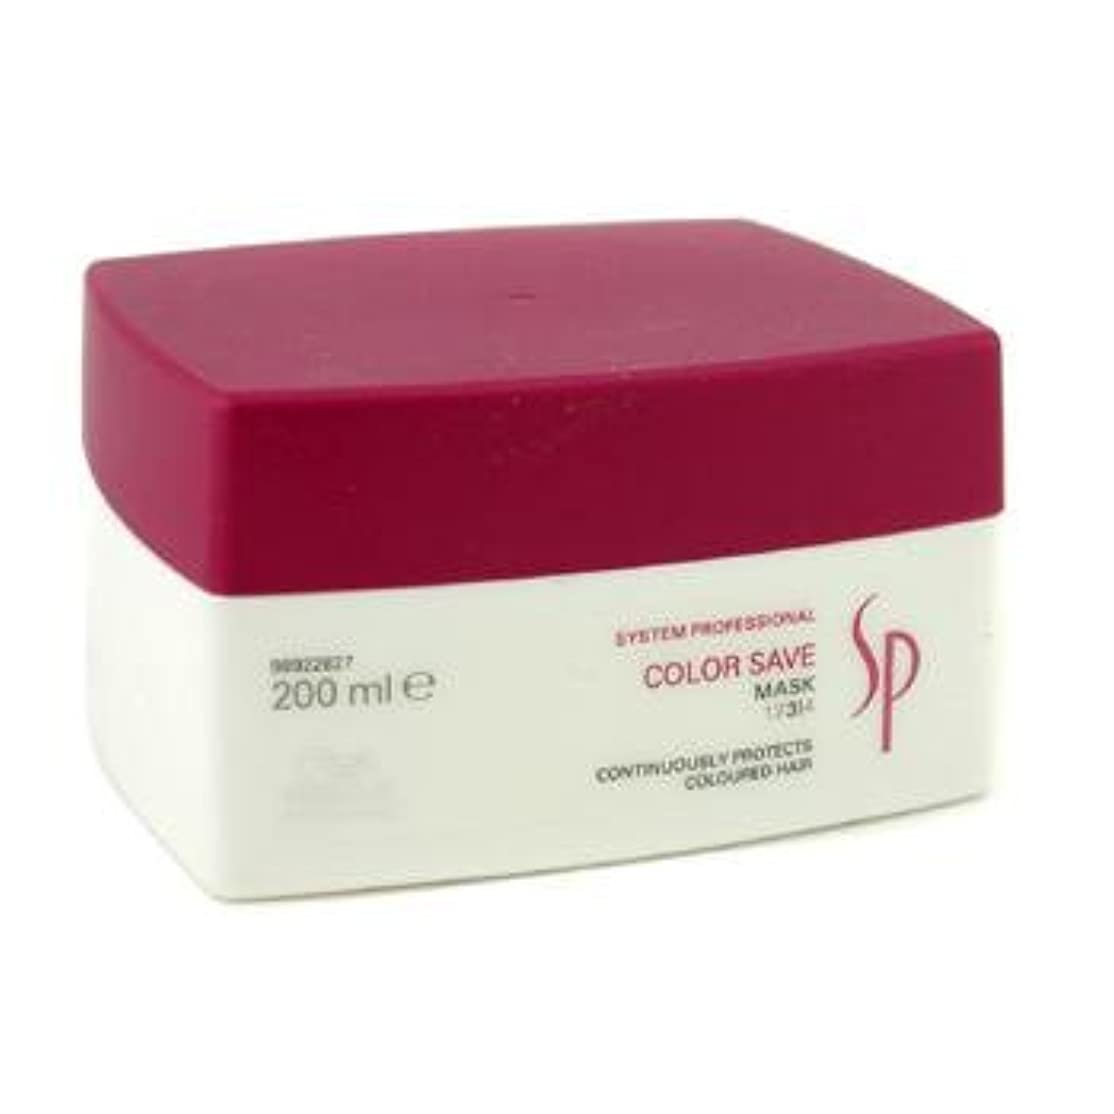 [Wella] SP Color Save Mask ( For Coloured Hair ) 200ml/6.67oz[並行輸入品] [並行輸入品]